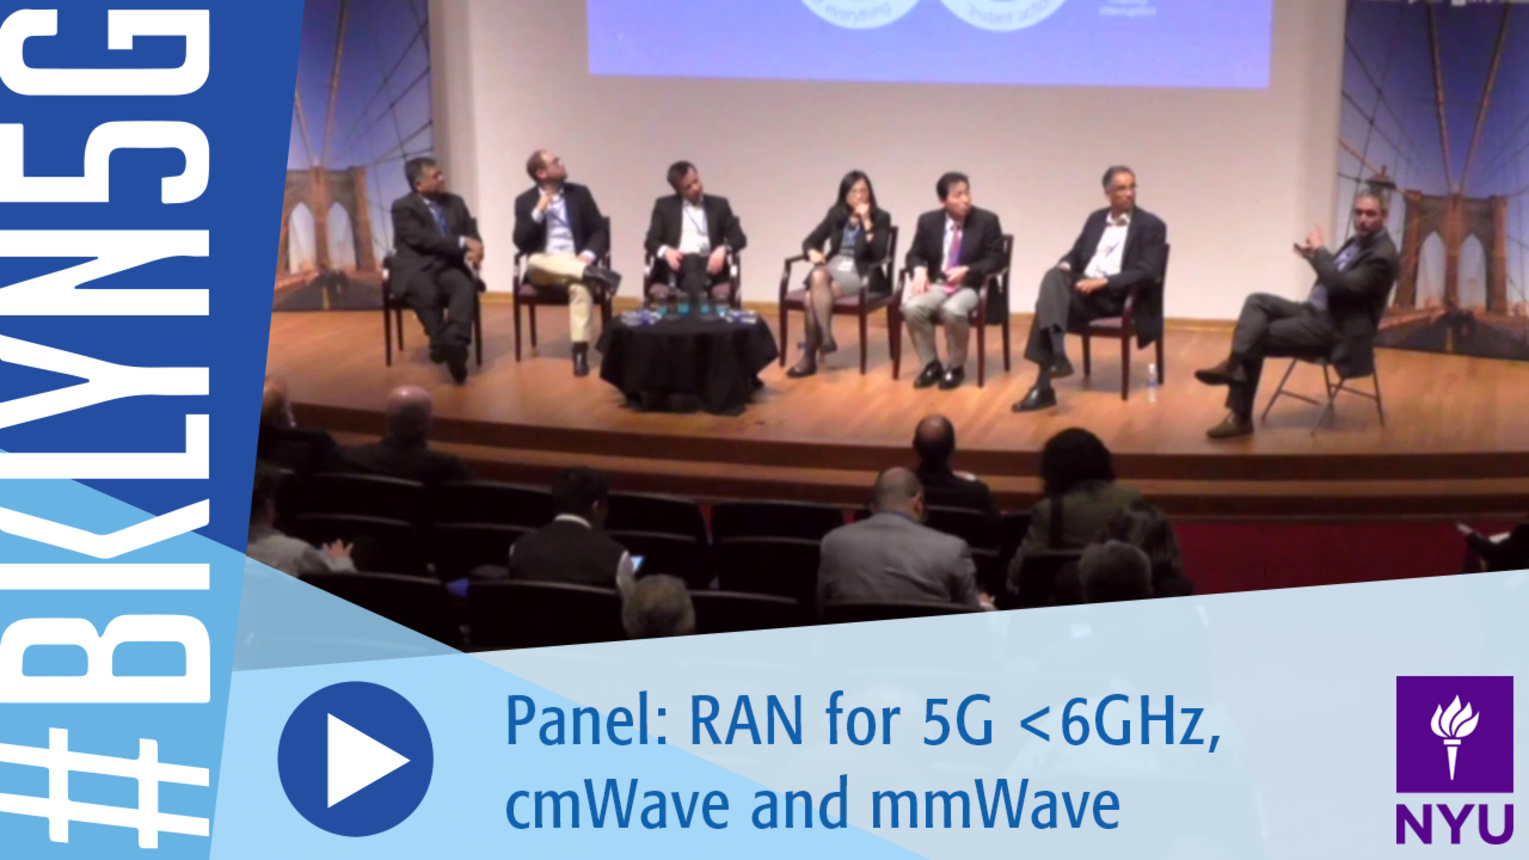 Brooklyn 5G 2016: Panel on RAN for 5G <6GHz, cmWave and mmWave